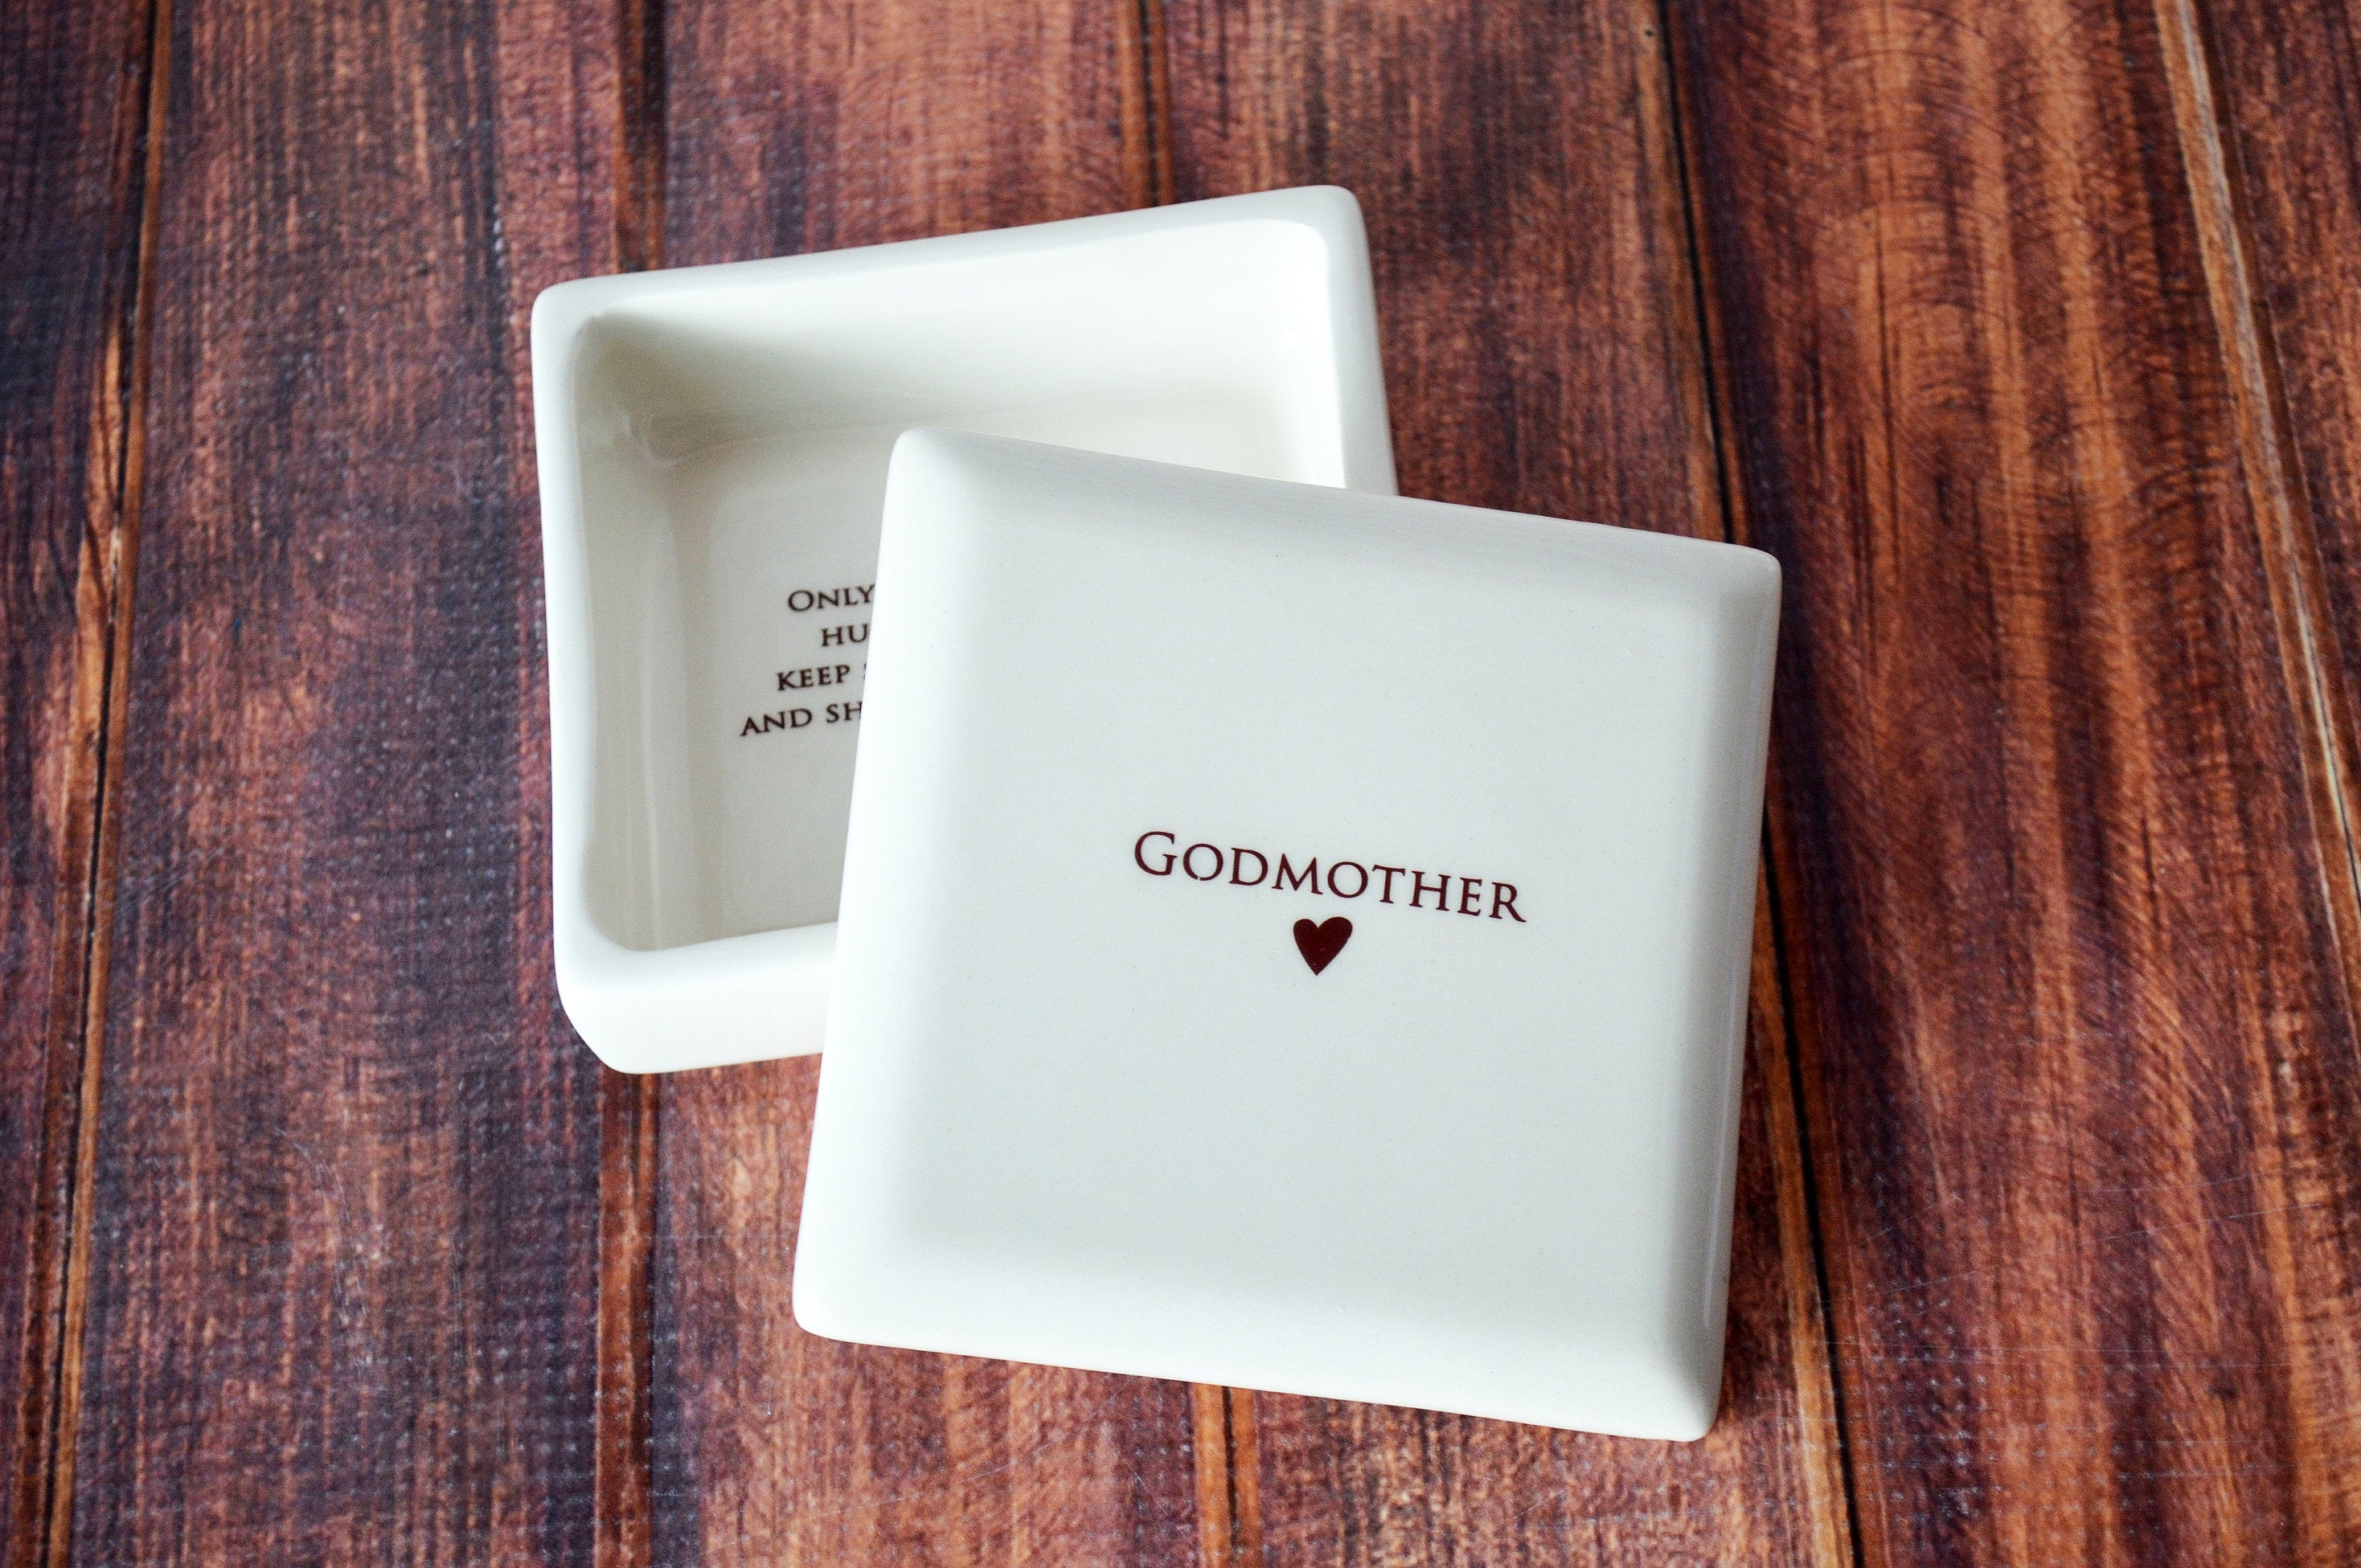 Godmother Gift Godmother Gift Idea Godmother Present Godparent Gift Godparent Gift For Baptism Godparent Gift Idea Square Keepsake Box